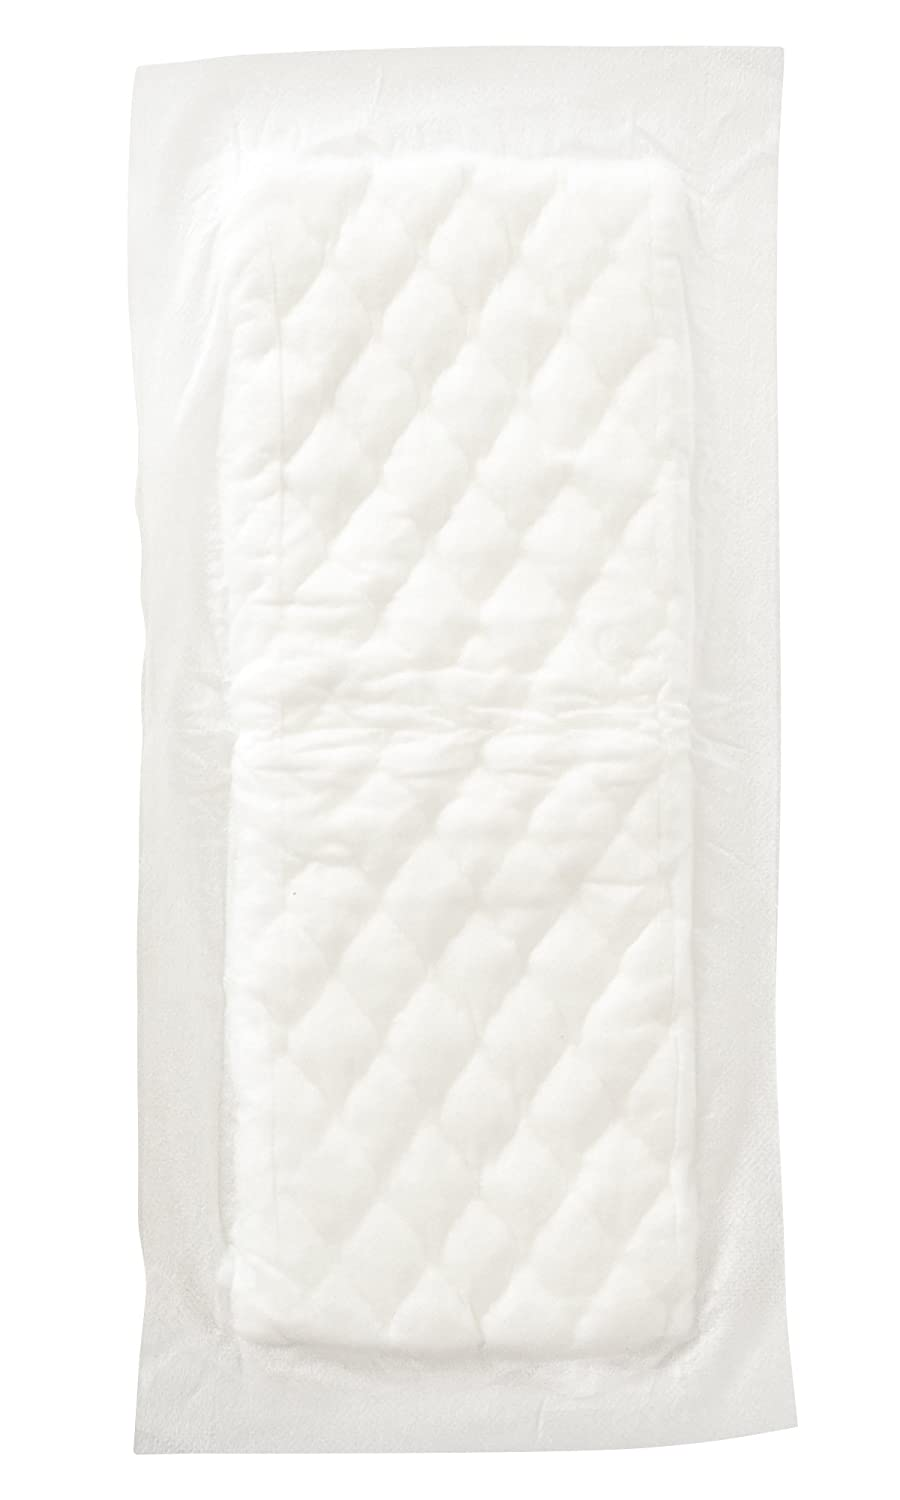 Perfect Bum 50 Piece Disposable Liners, White, Small/Medium (Discontinued by Manufacturer)